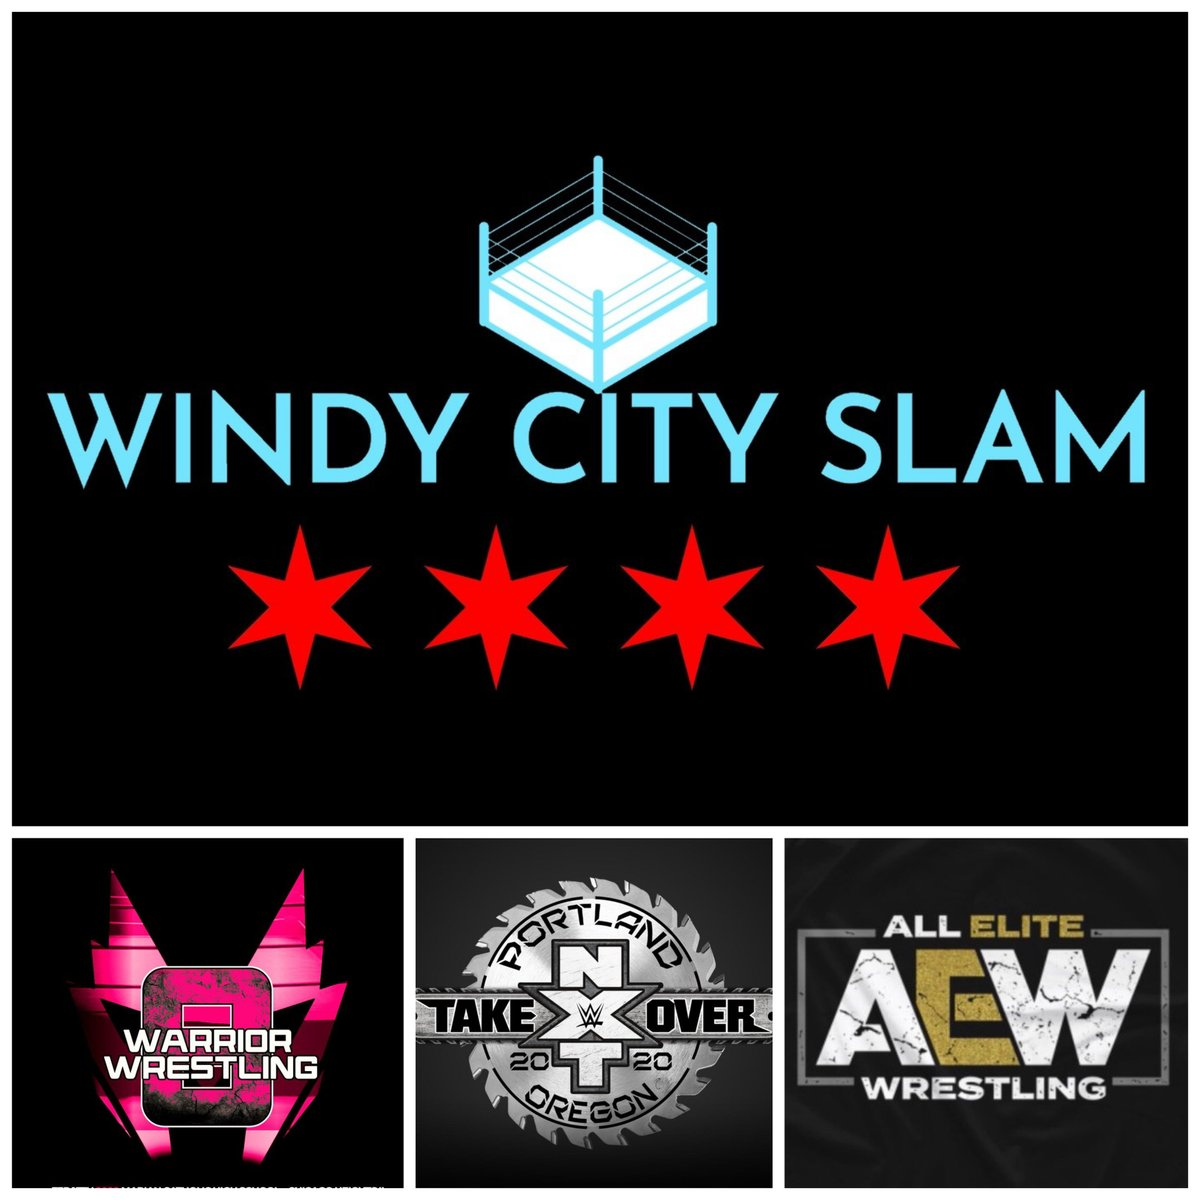 Check out Ep. 5 of @WindyCitySlam Podcast! We're talking @WarriorWrstlng 8, including great performances by @FlyinBrianJr & @RealSamAdonis, plus @WWENXT TakeOver Portland, @WWE, @AEWrestling & local events. Listen:   #indywrestling #Warrior8 #WWE #NXT #AEW